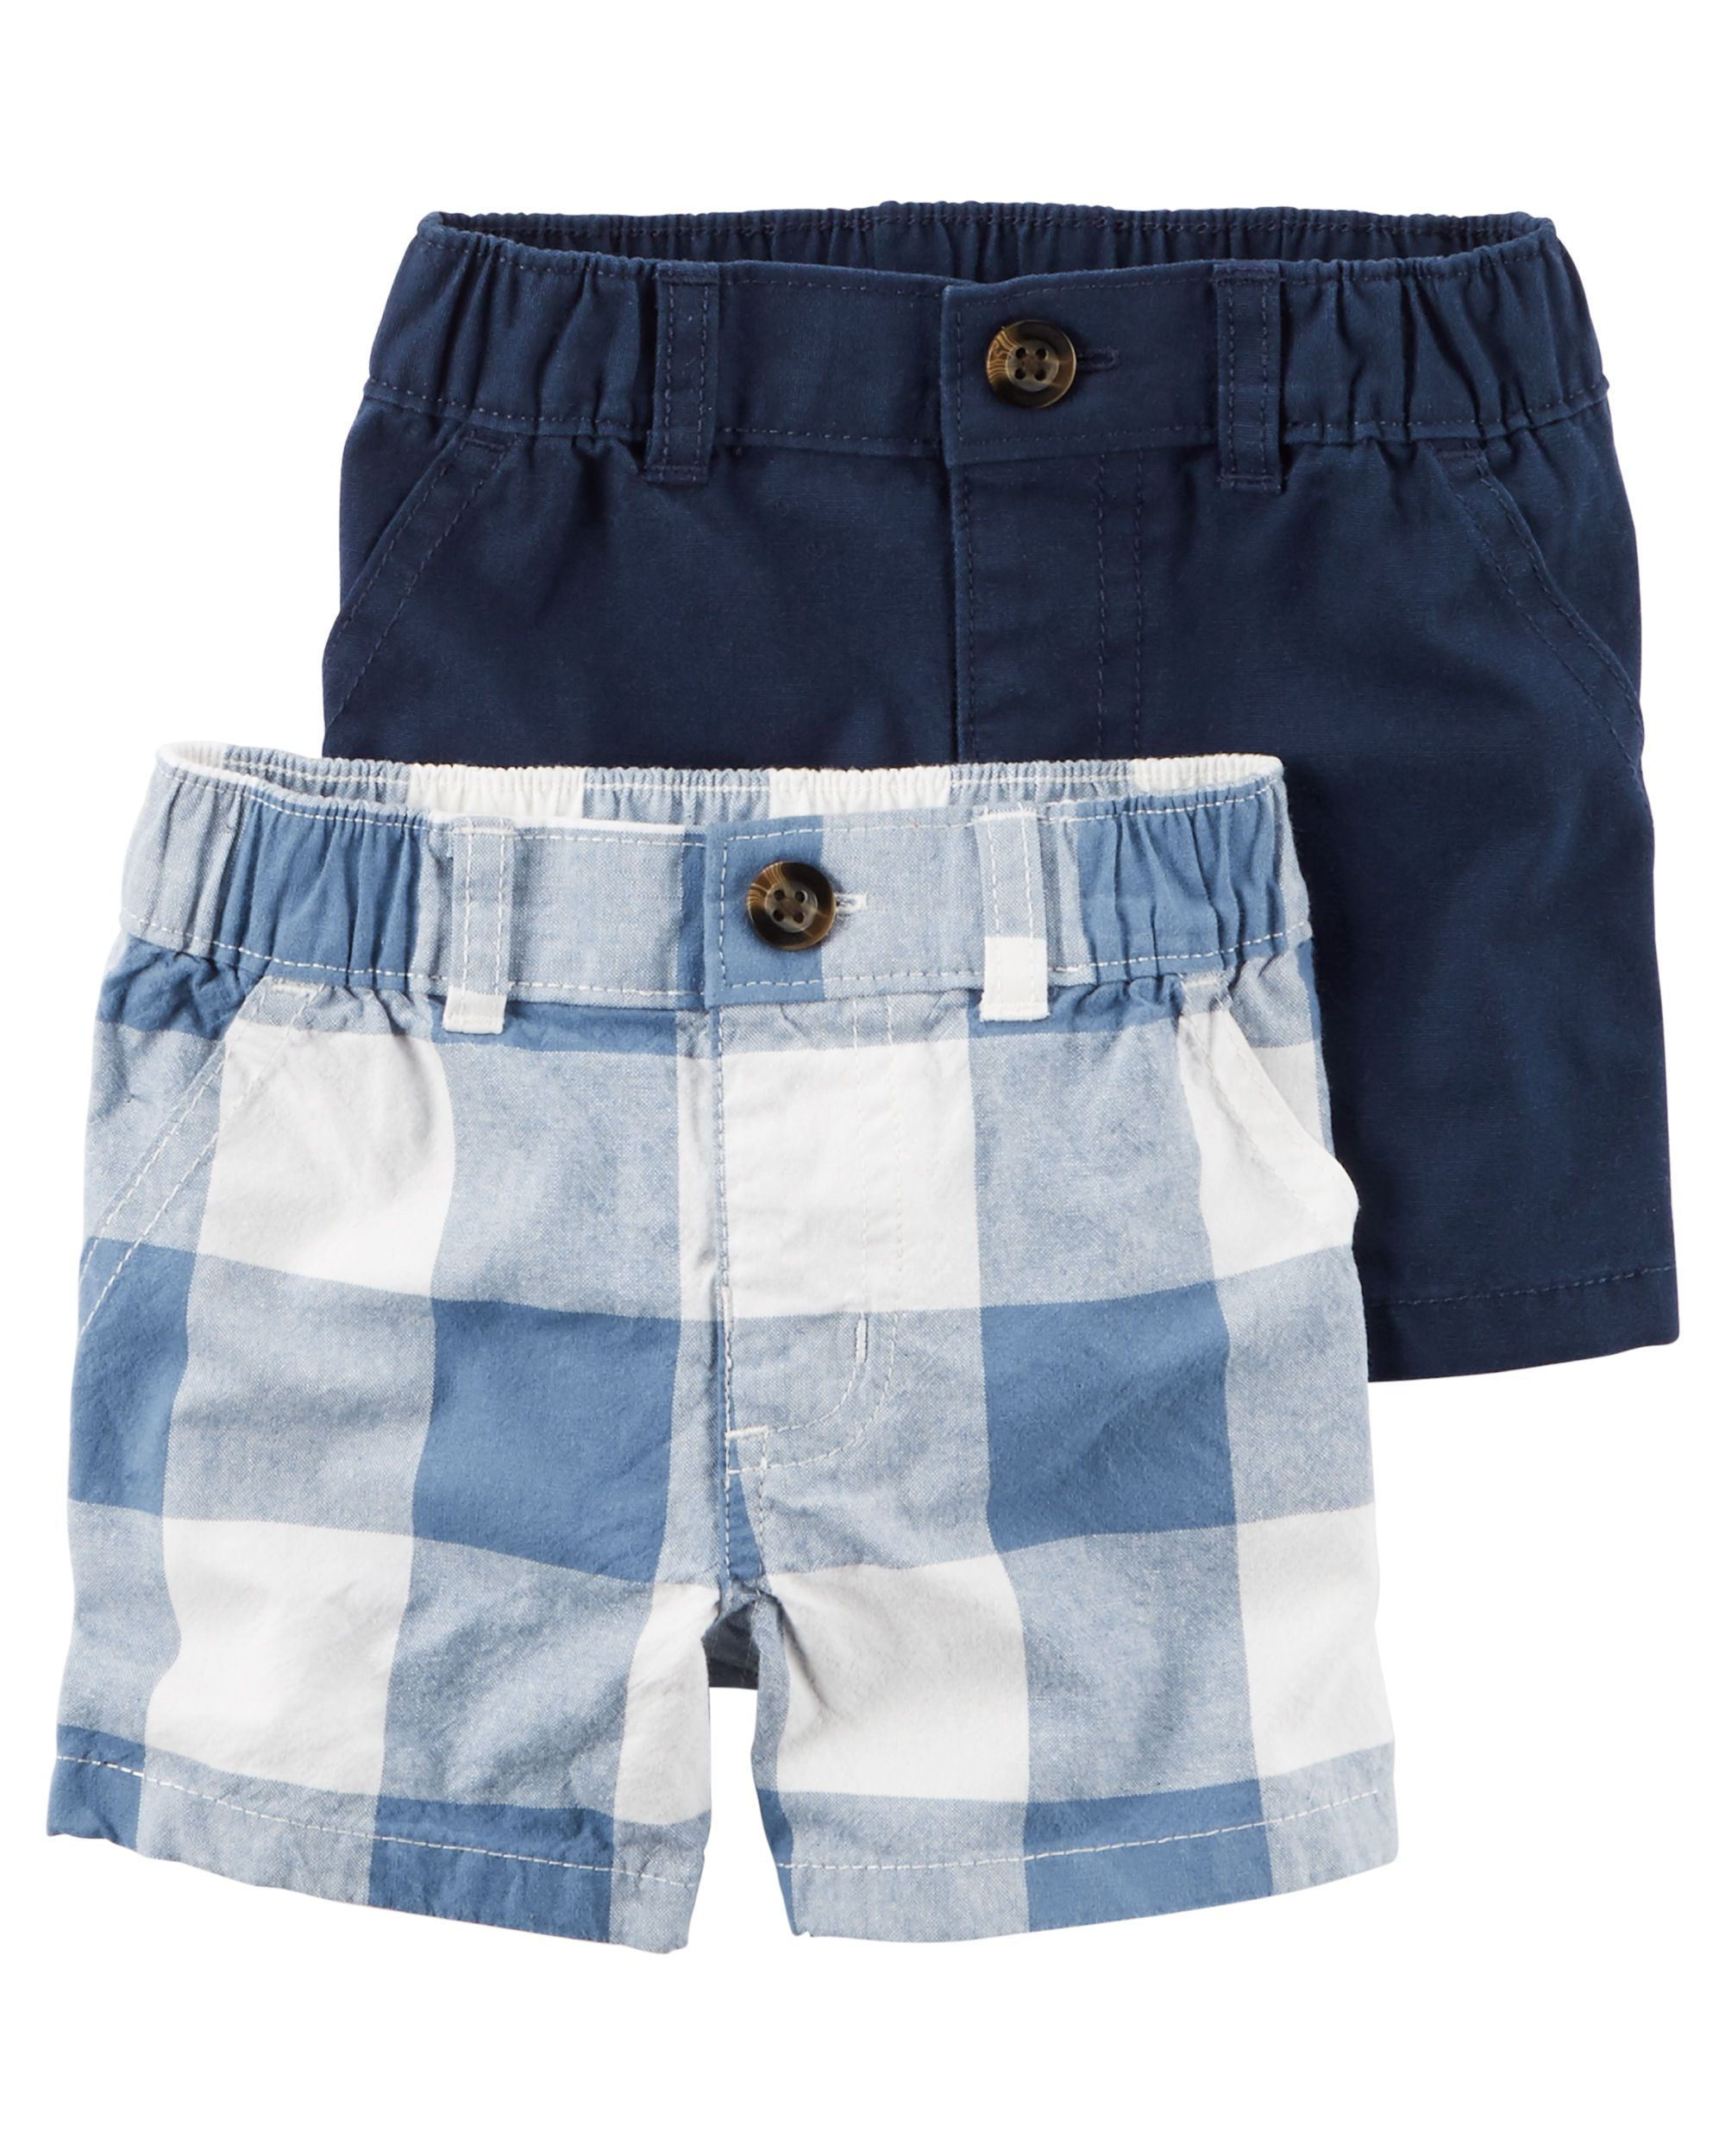 5bd8cb1c0 Baby Boy 2-Pack Shorts from Carters.com. Shop clothing & accessories from a  trusted name in kids, toddlers, and baby clothes.